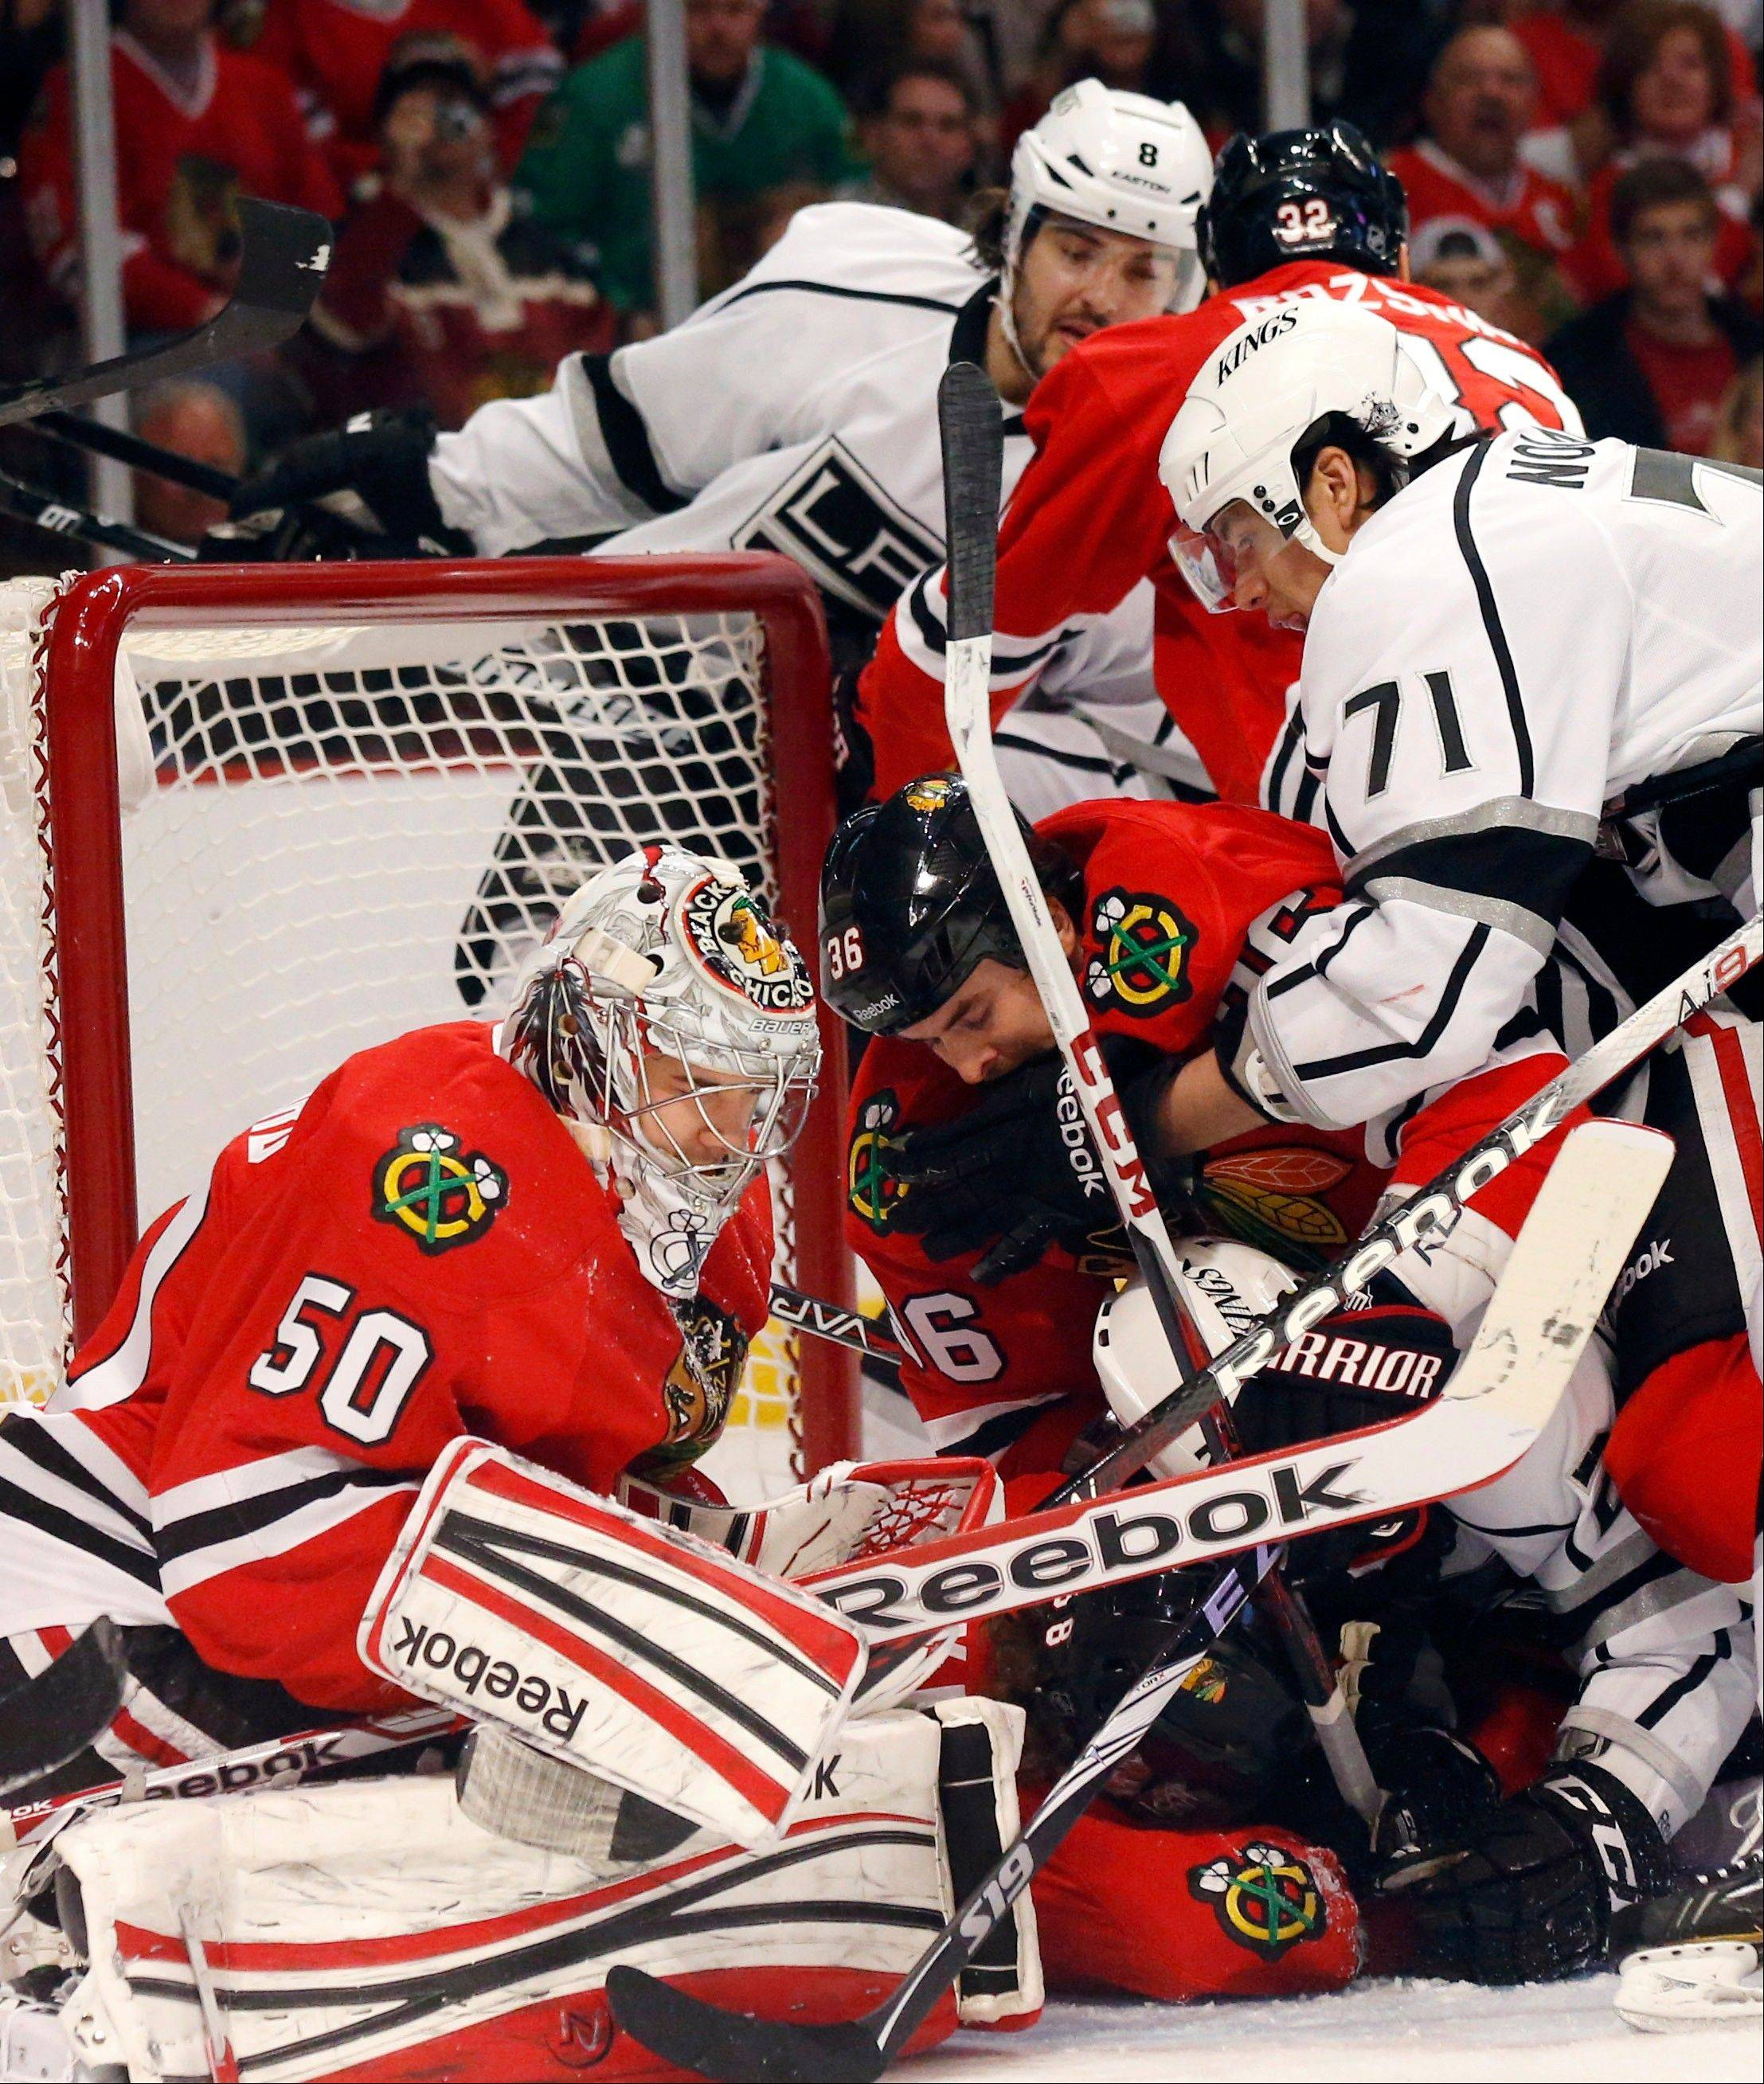 Several Chicago Blackhawks and Los Angeles Kings players crash into the goal crease near goalie Corey Crawford during the first period.